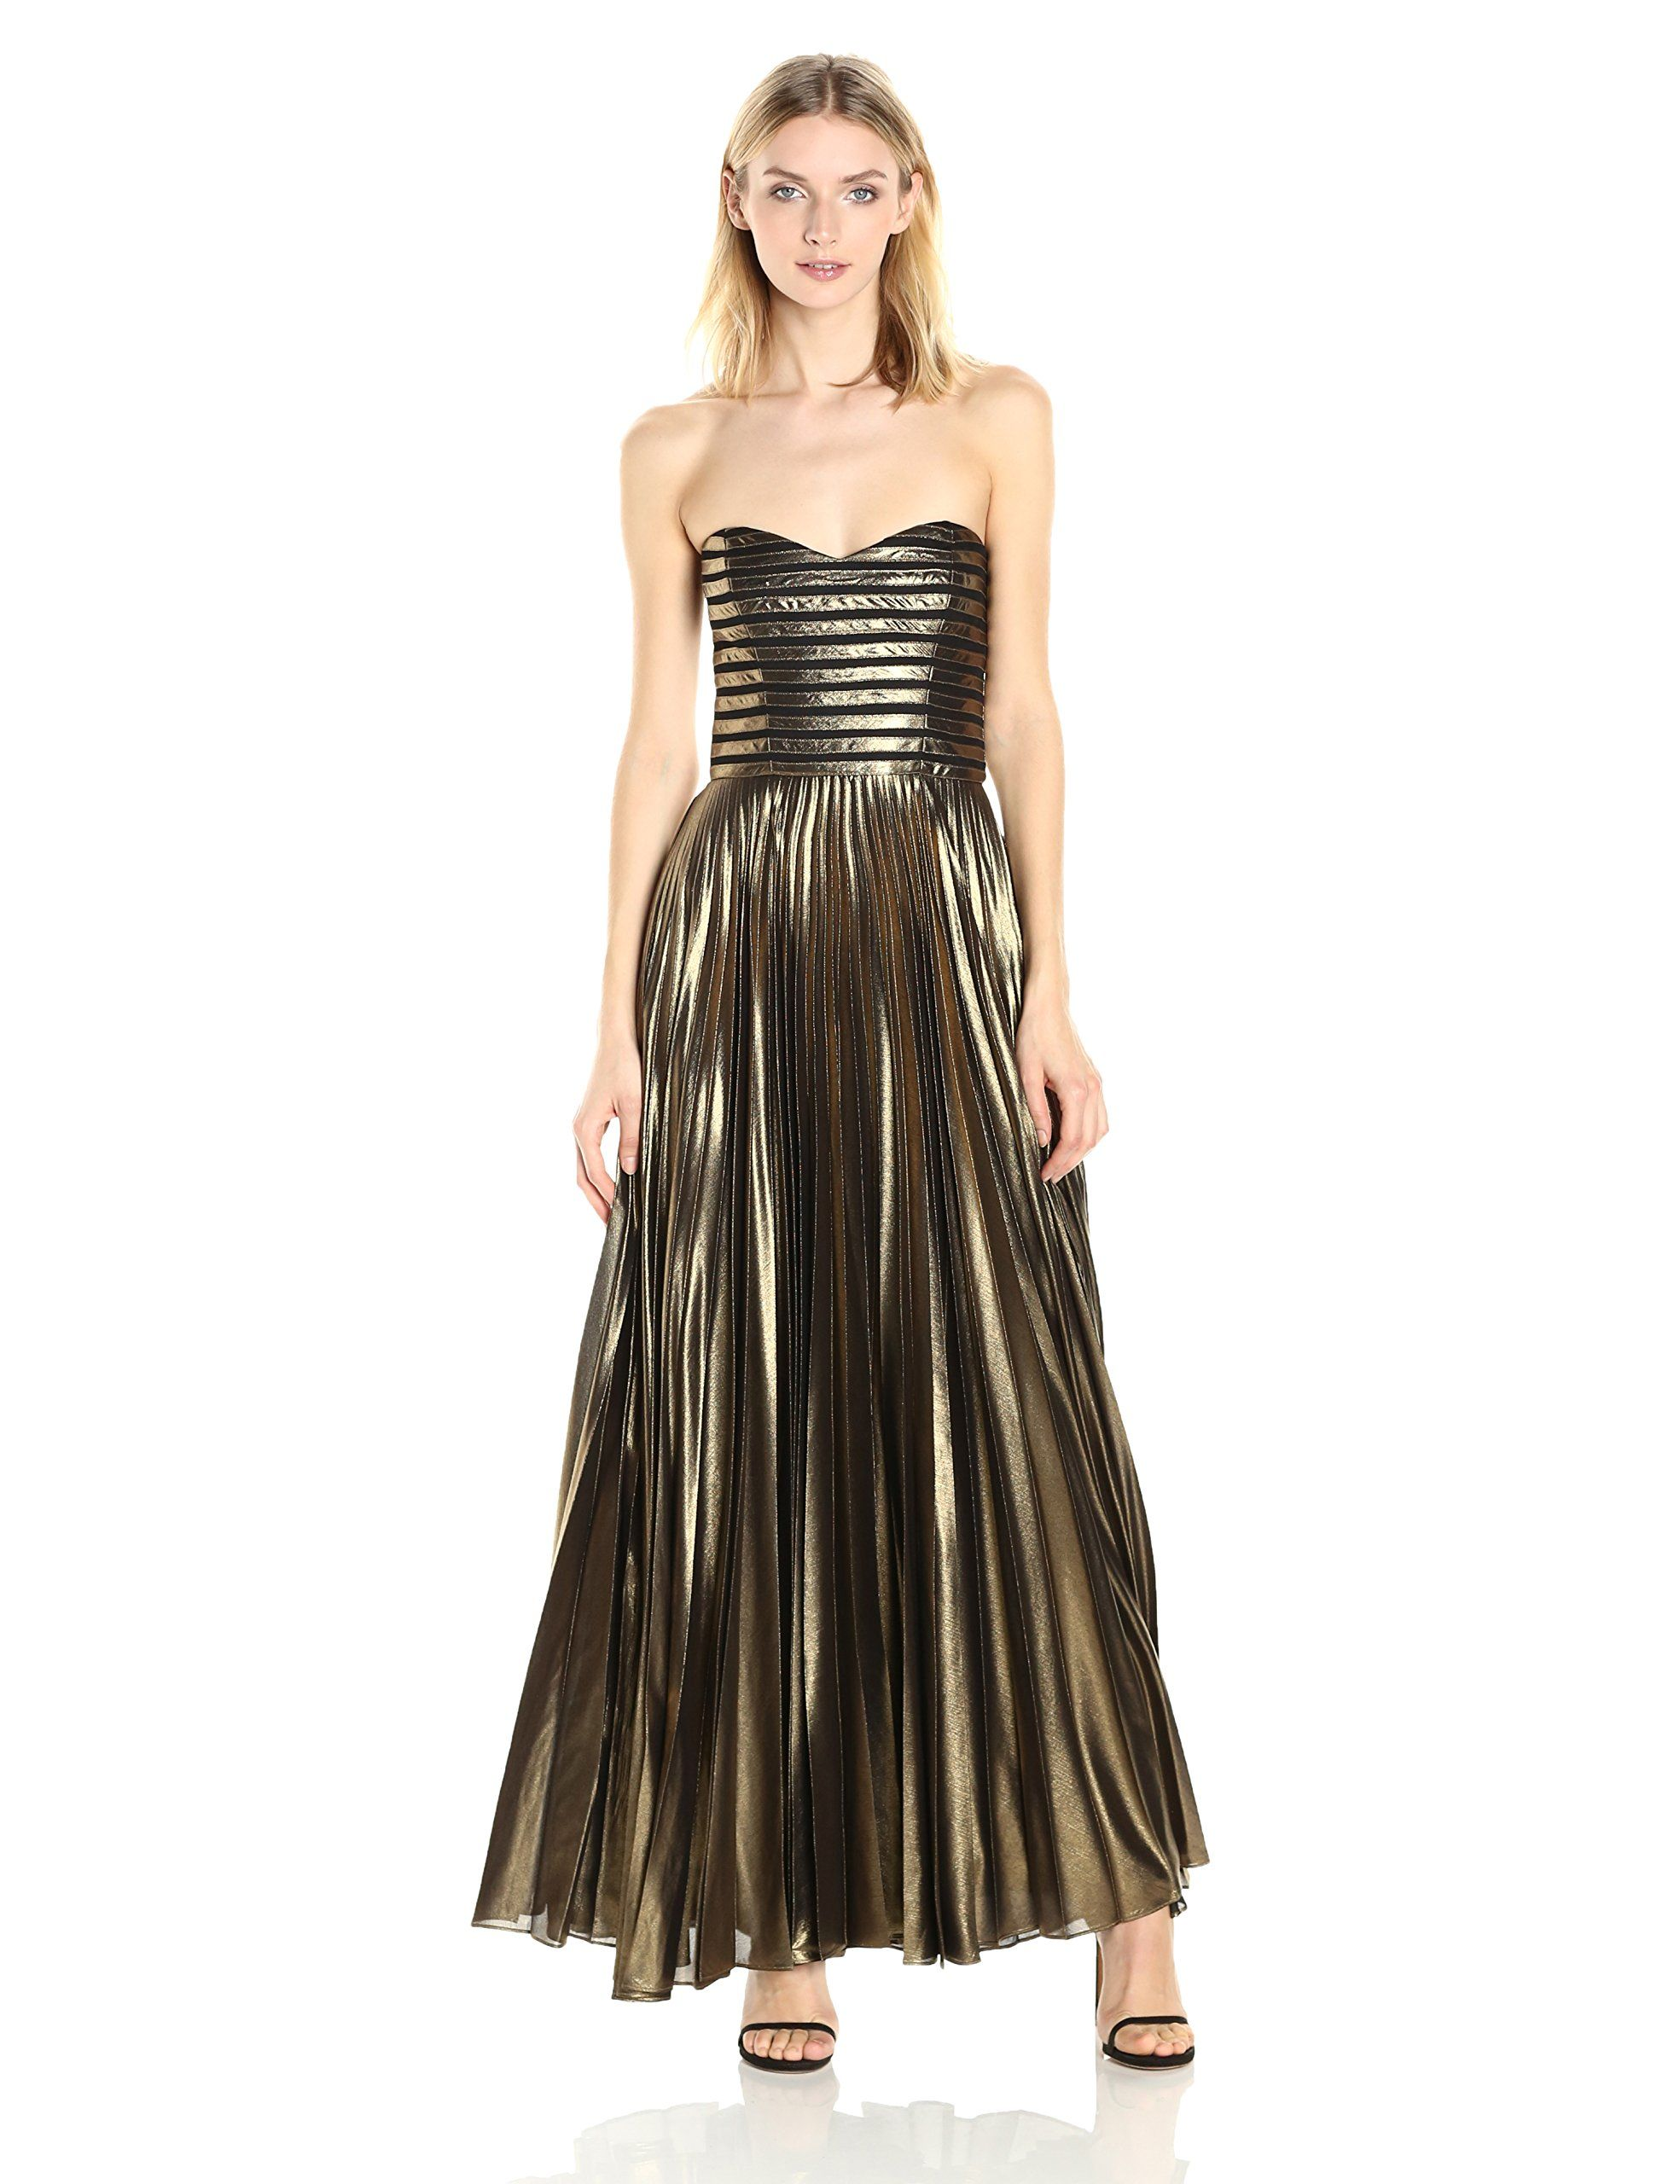 Parker womenus jacquie dress gold made in china percent